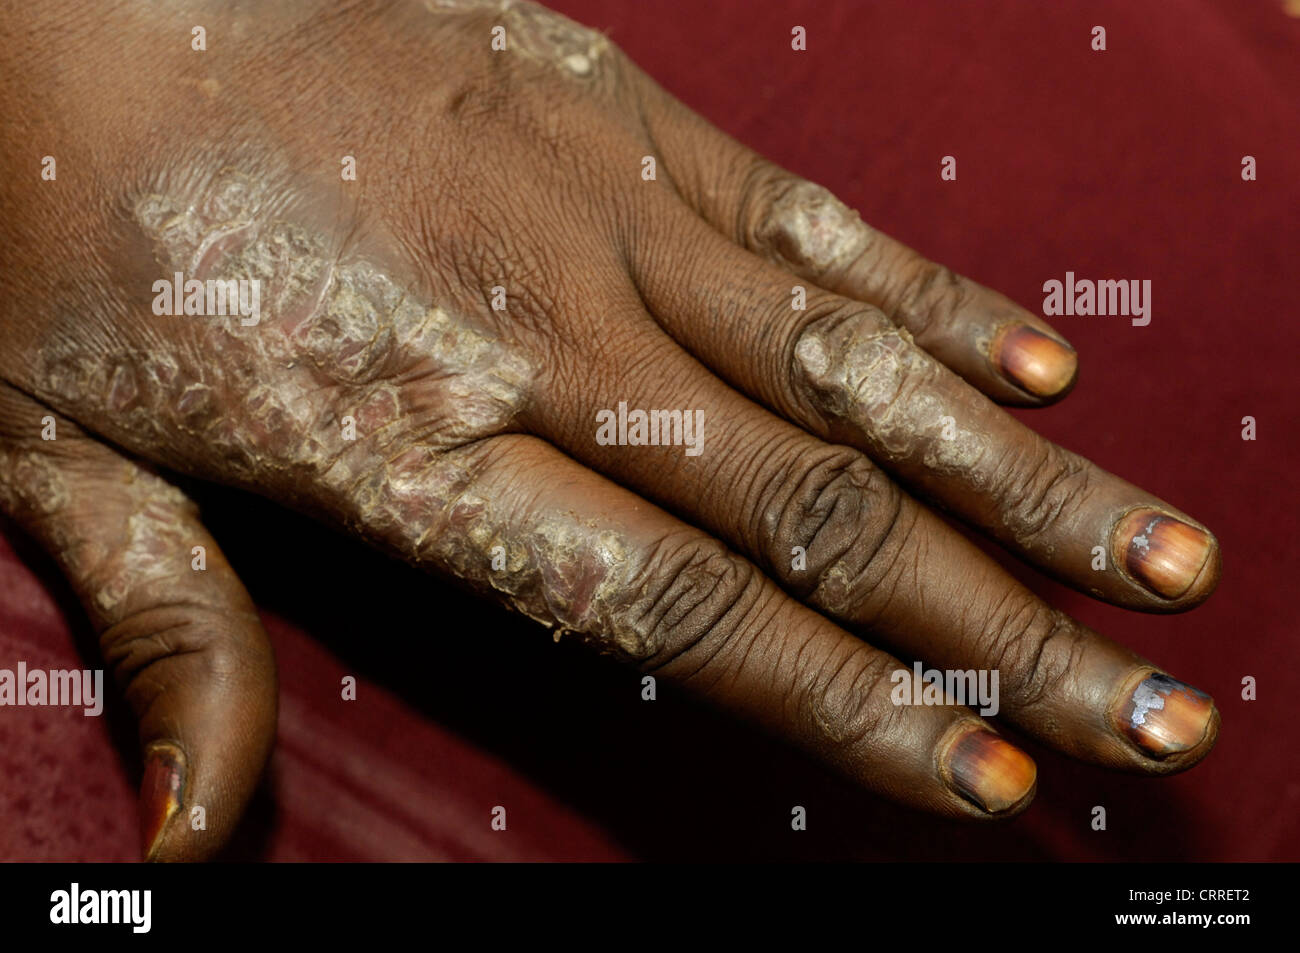 A woman develops scaly plaques on her hands. The etiology is unknown. - Stock Image